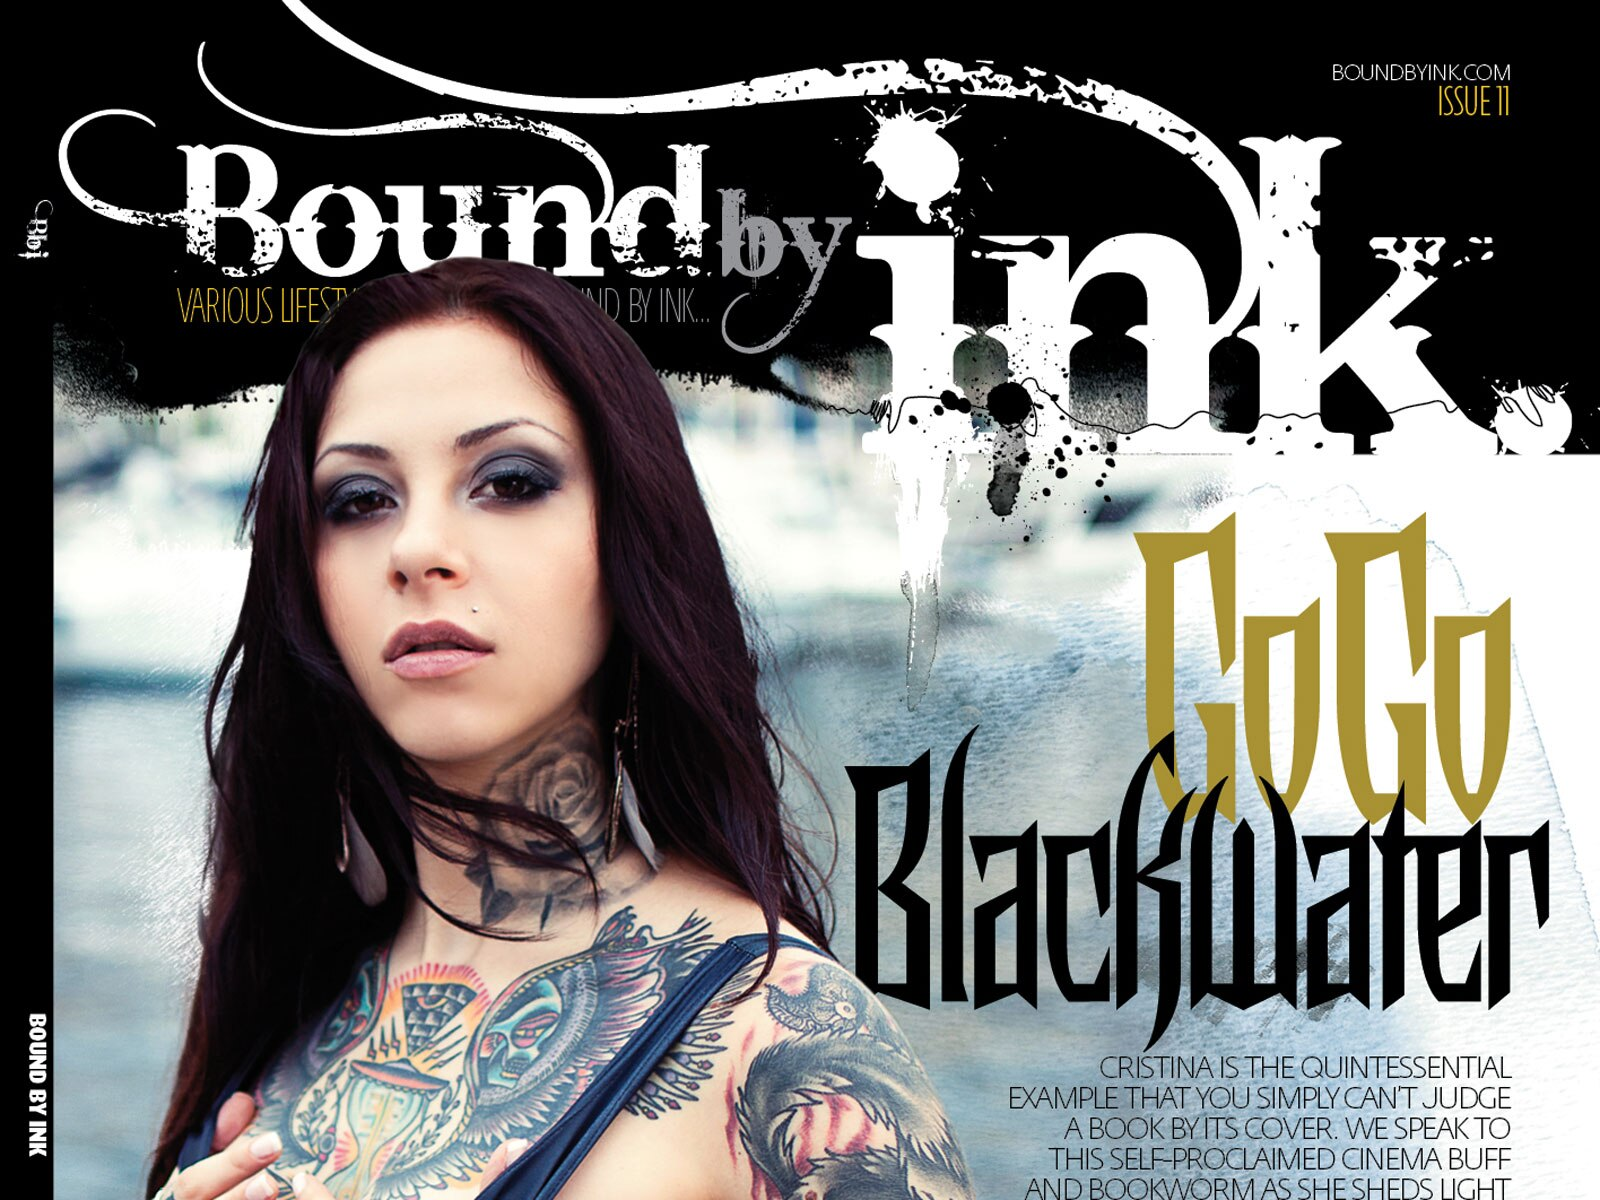 1210-lrmp-01-ps-issue-11-bound-by-ink-cover